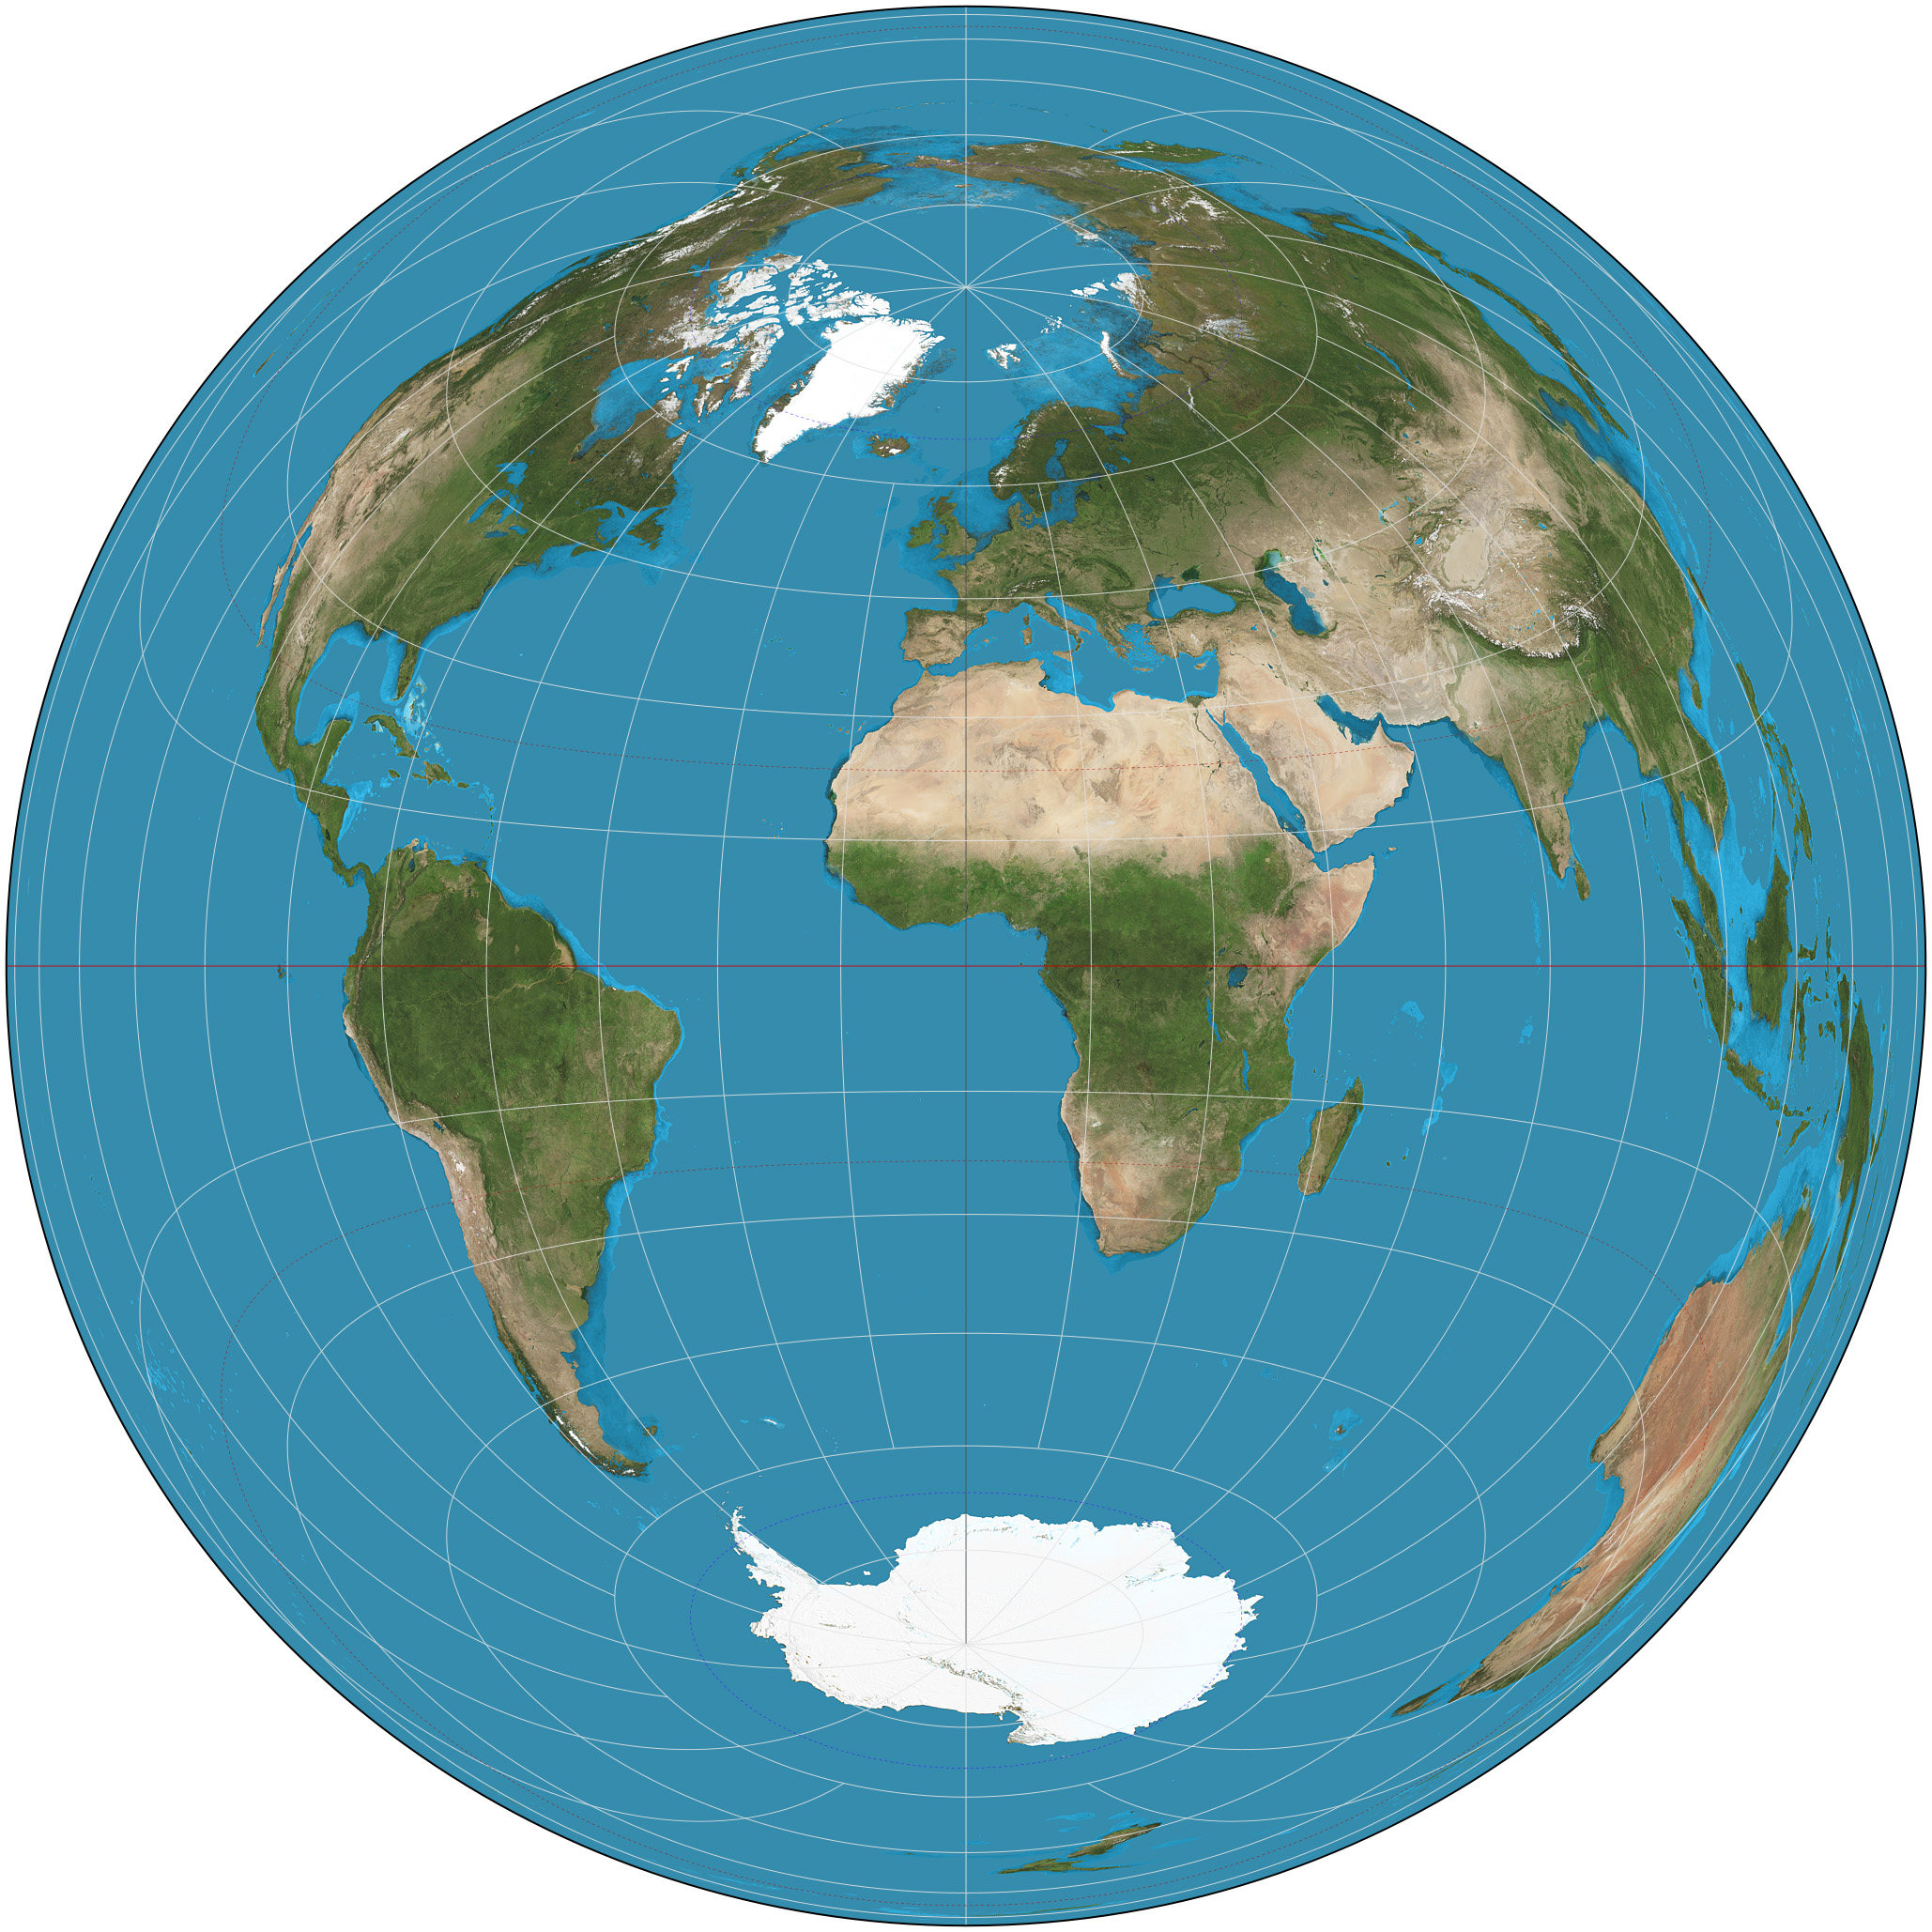 Aviation Charts For Google Earth: List of map projections - Wikipedia,Chart